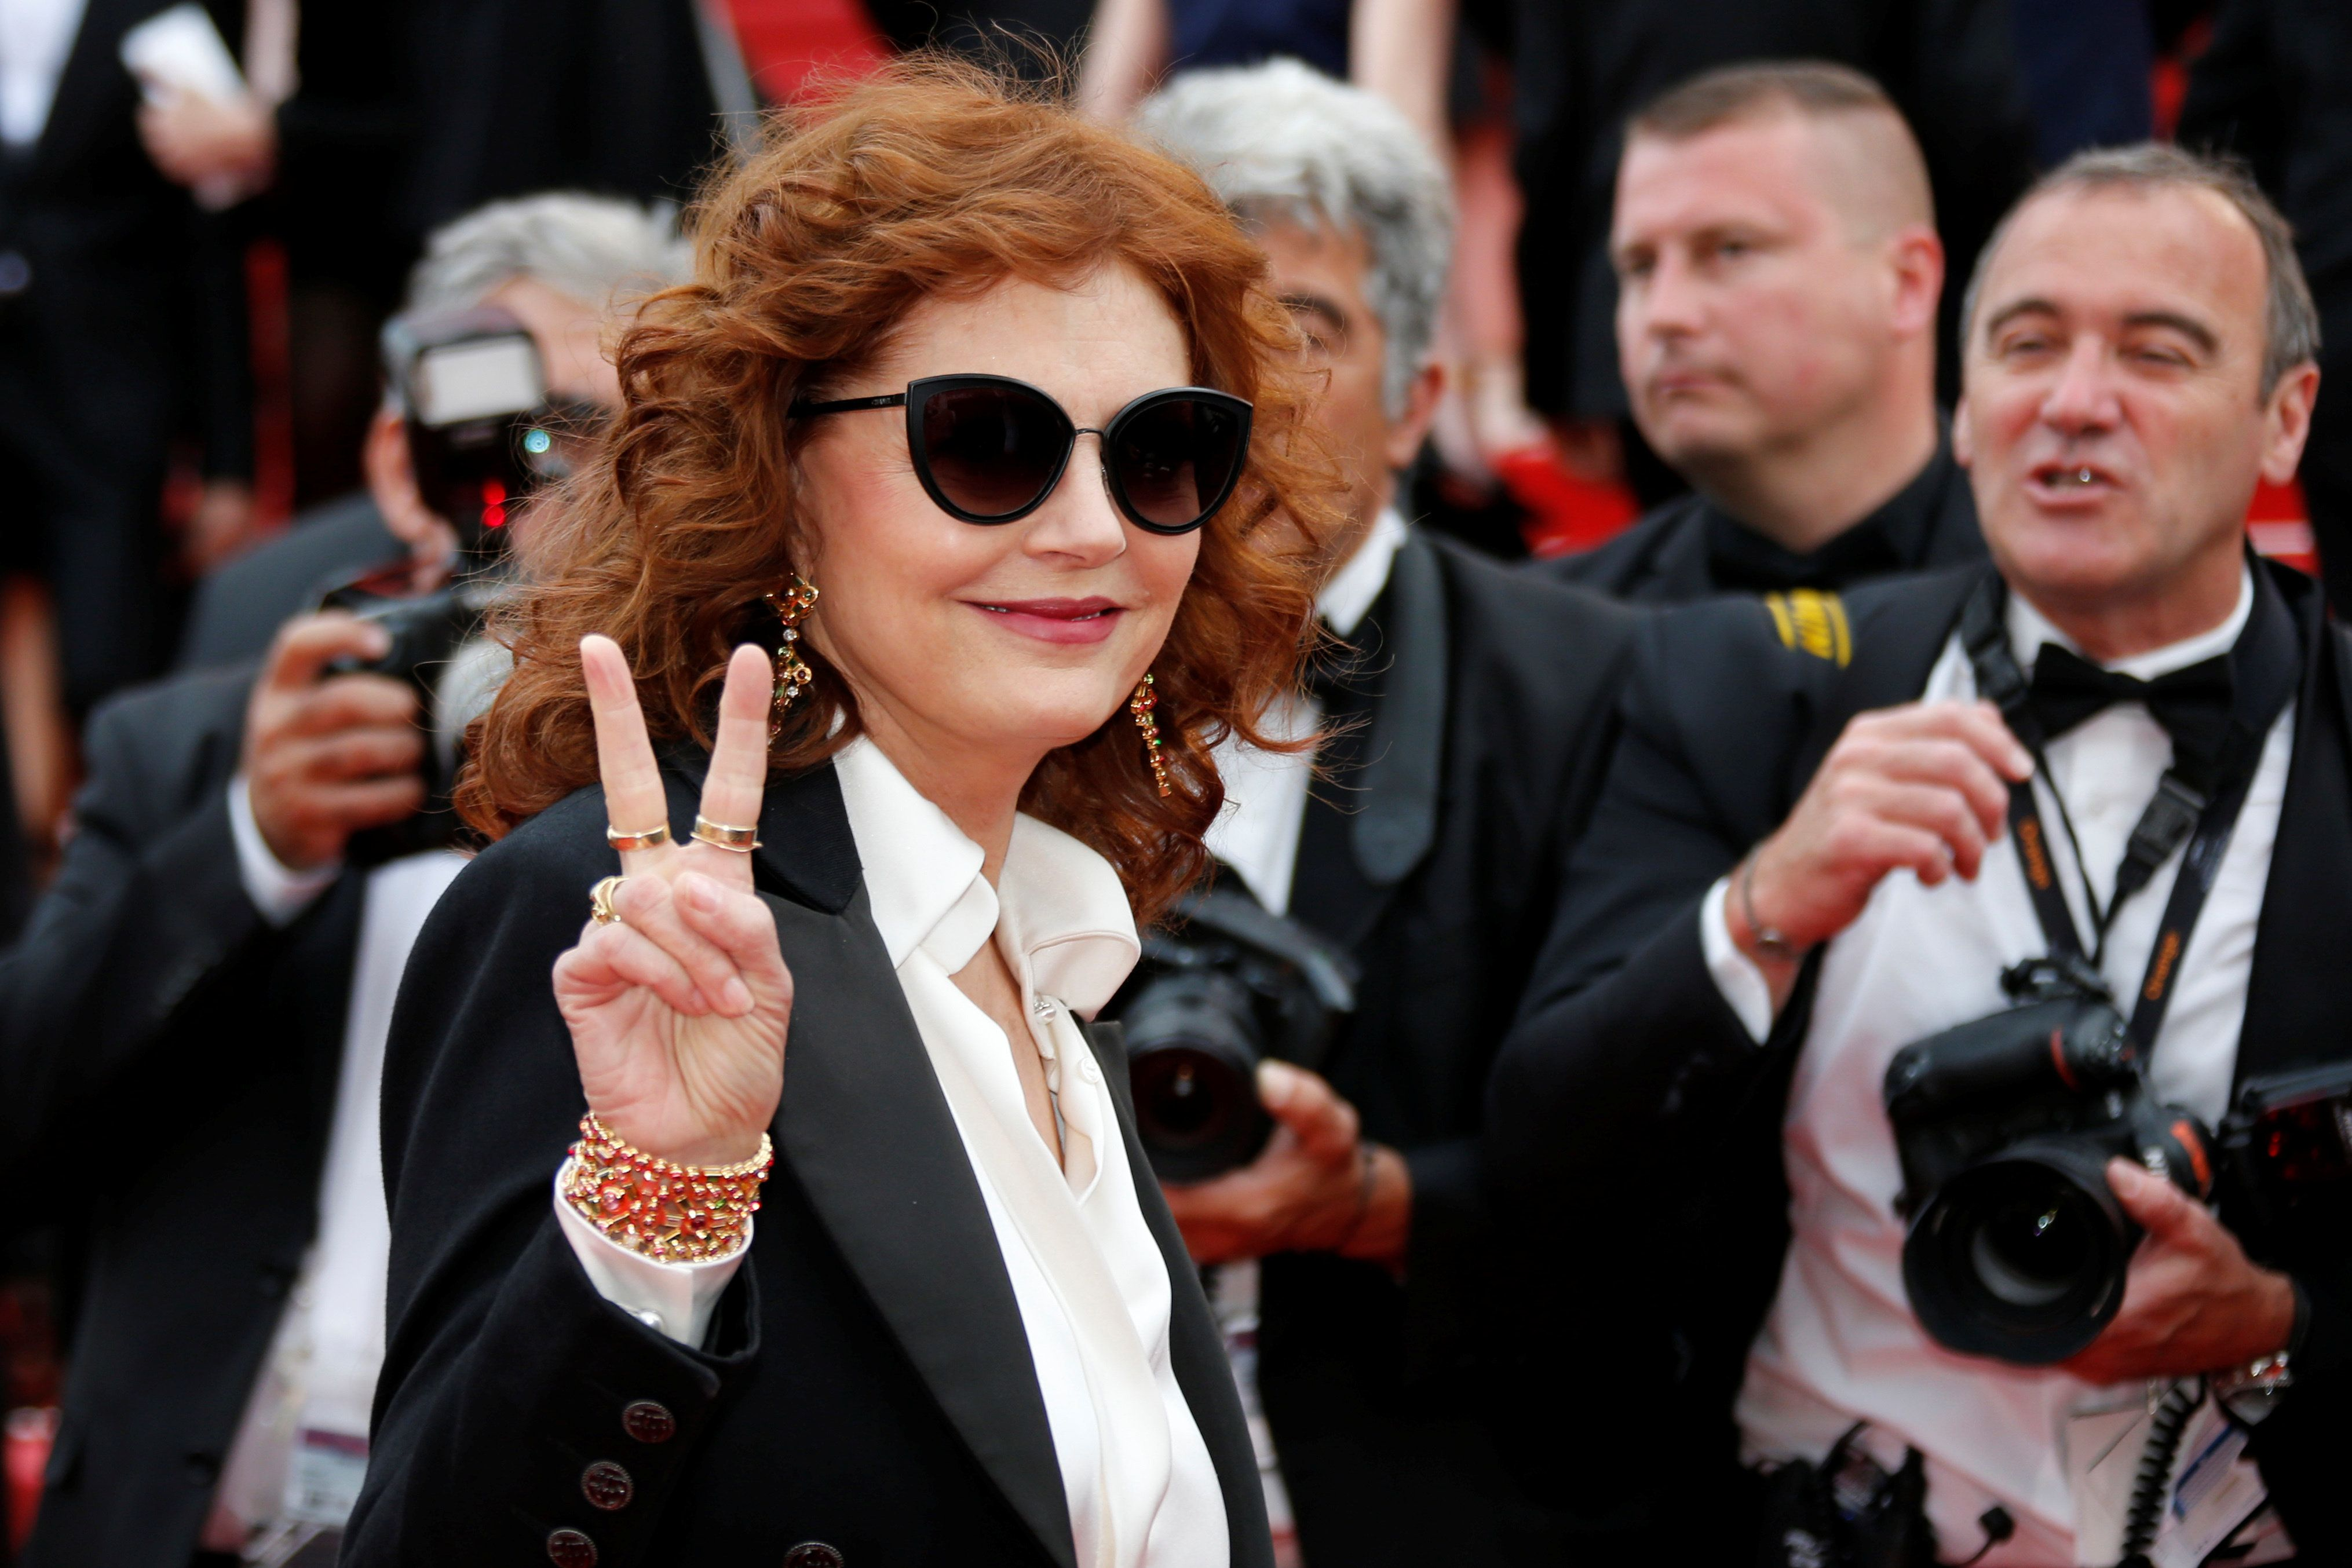 "70th Cannes Film Festival - Screening of the film ""Nelyubov"" (Loveless) in competition - Red Carpet Arrivals - Cannes, France. 18/05/2017.  Actress Susan Sarandon poses.        REUTERS/Jean-Paul Pelissier"